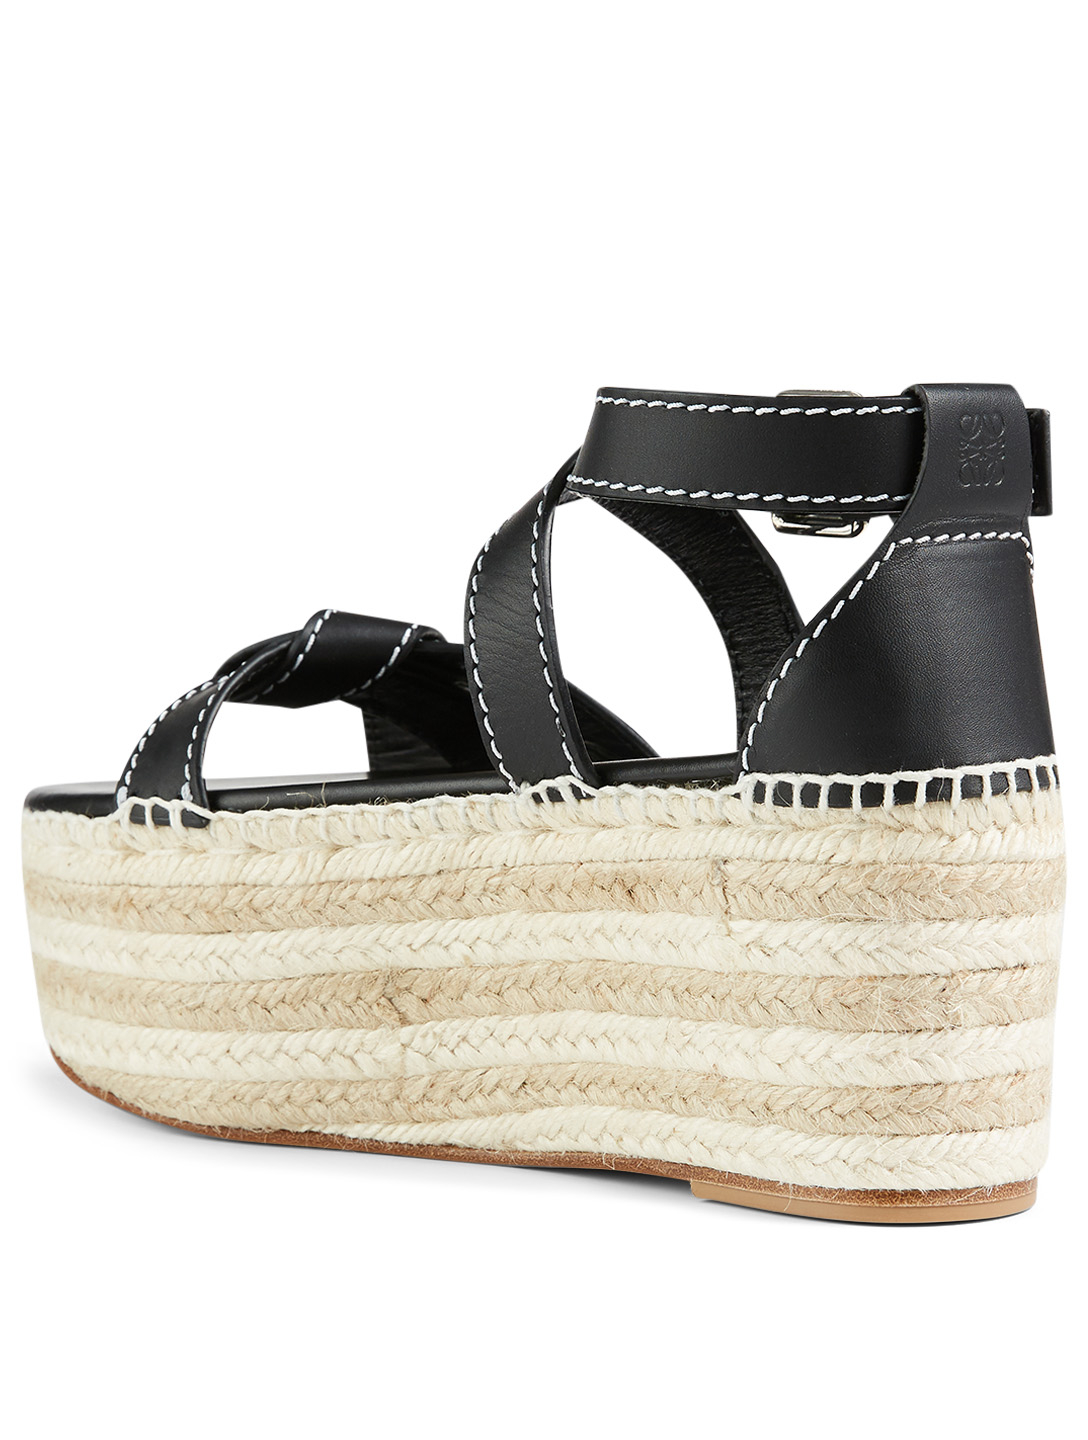 LOEWE Gate Leather Wedge Espadrille Sandals Women's Black